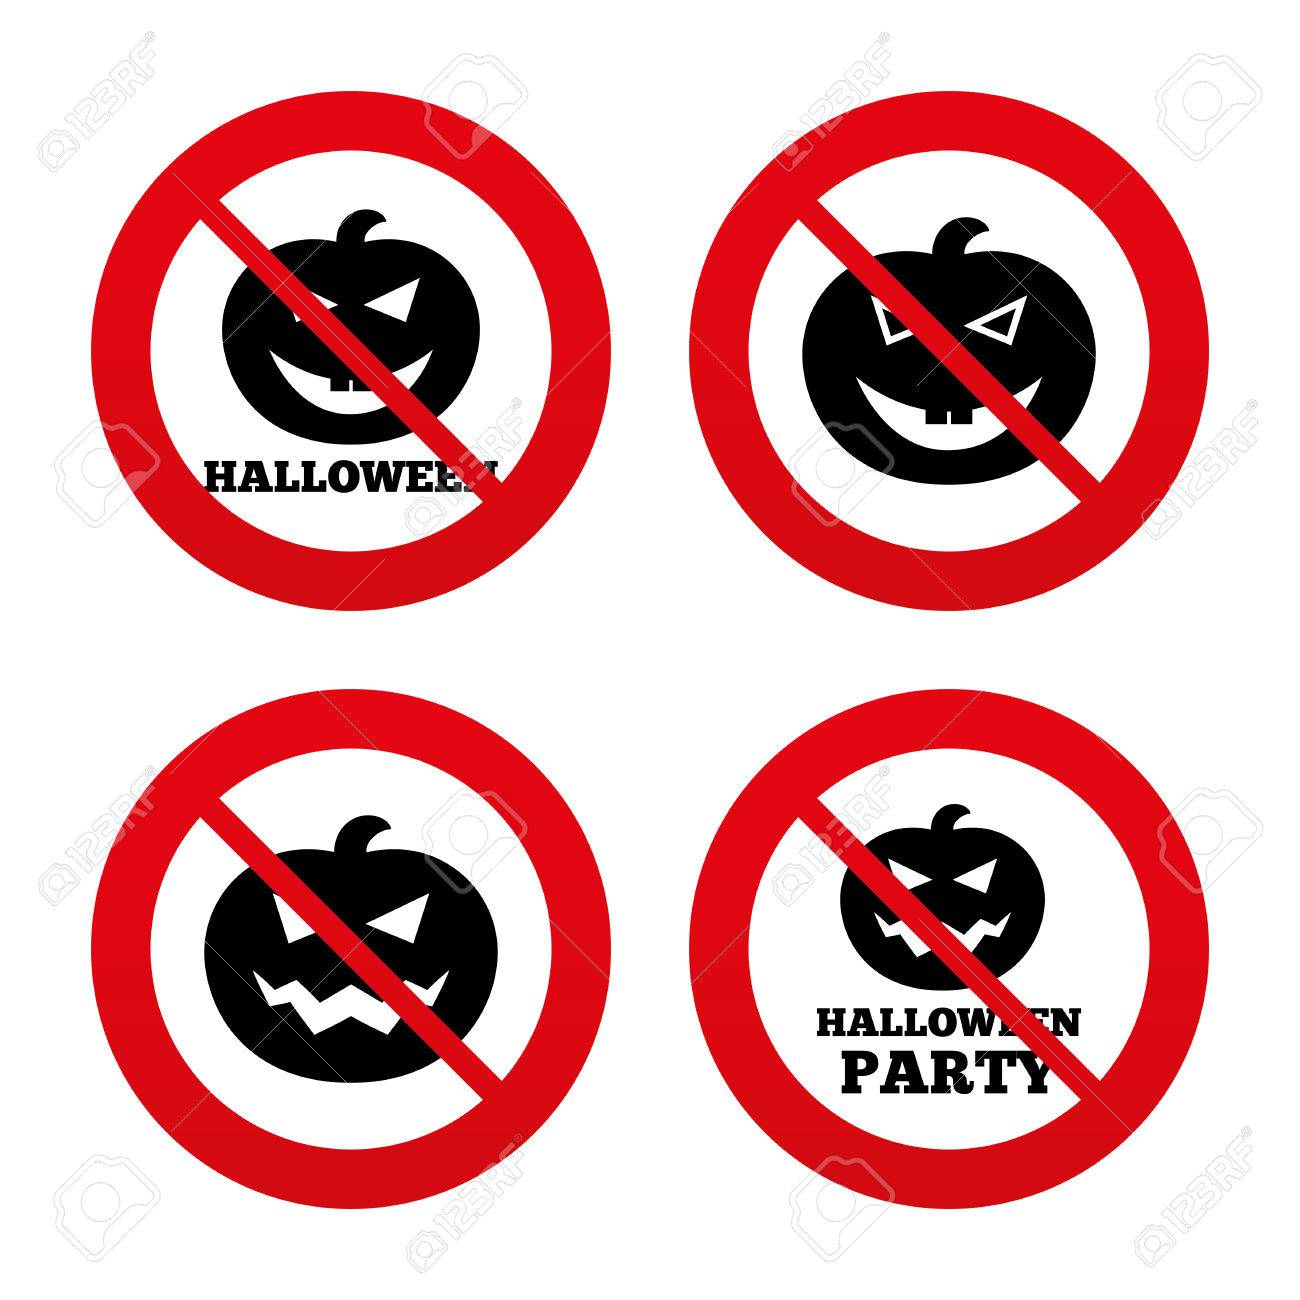 No Ban Or Stop Signs Halloween Pumpkin Icons Halloween Party